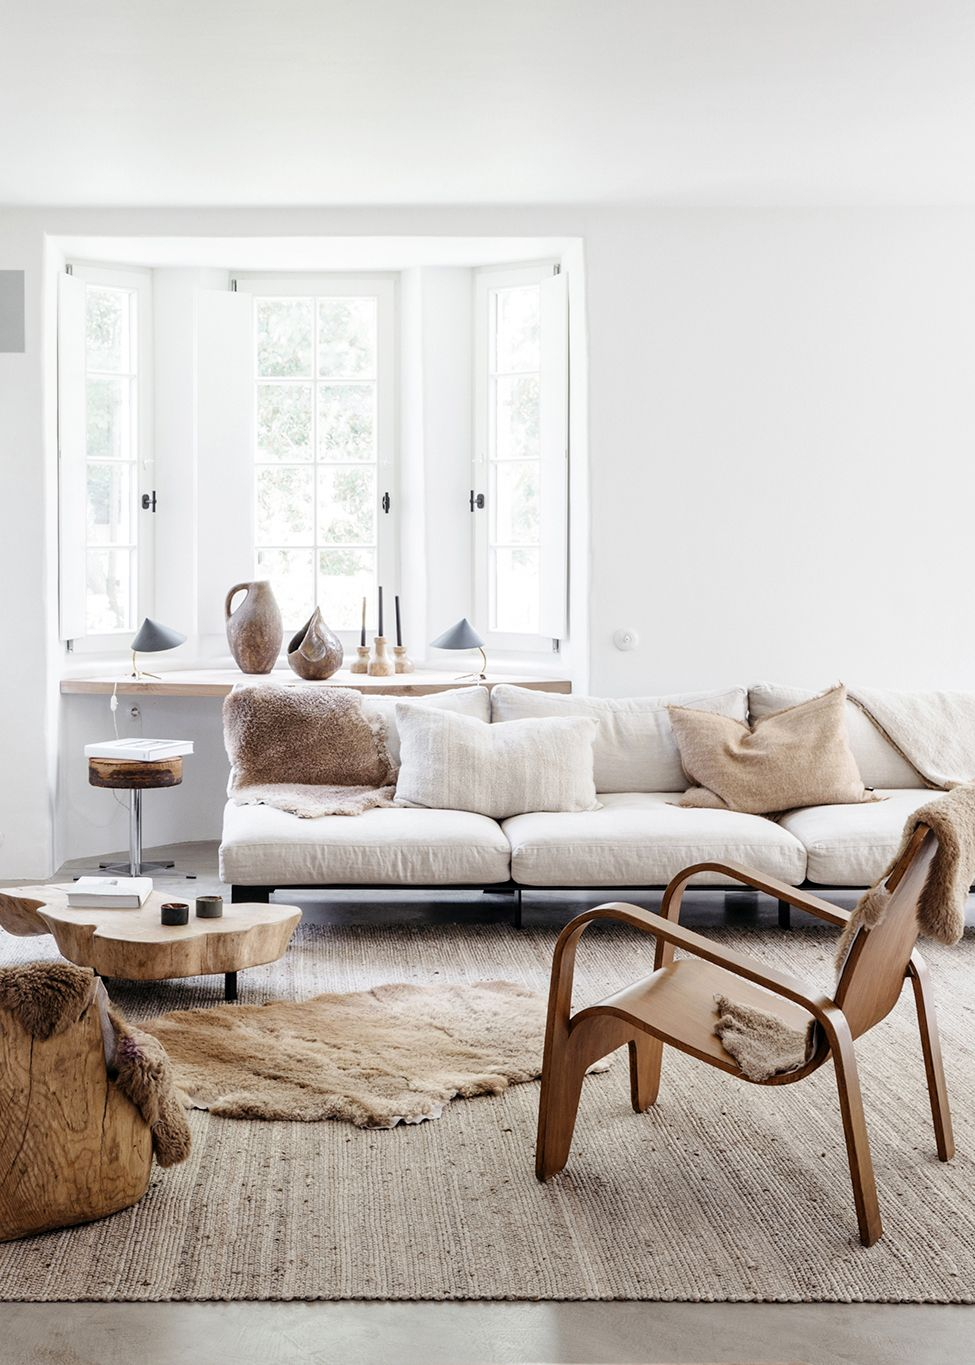 House Tour :: This Belgian Home Is The Perfect Cozy, Clean Slate for Winter #cozyliving